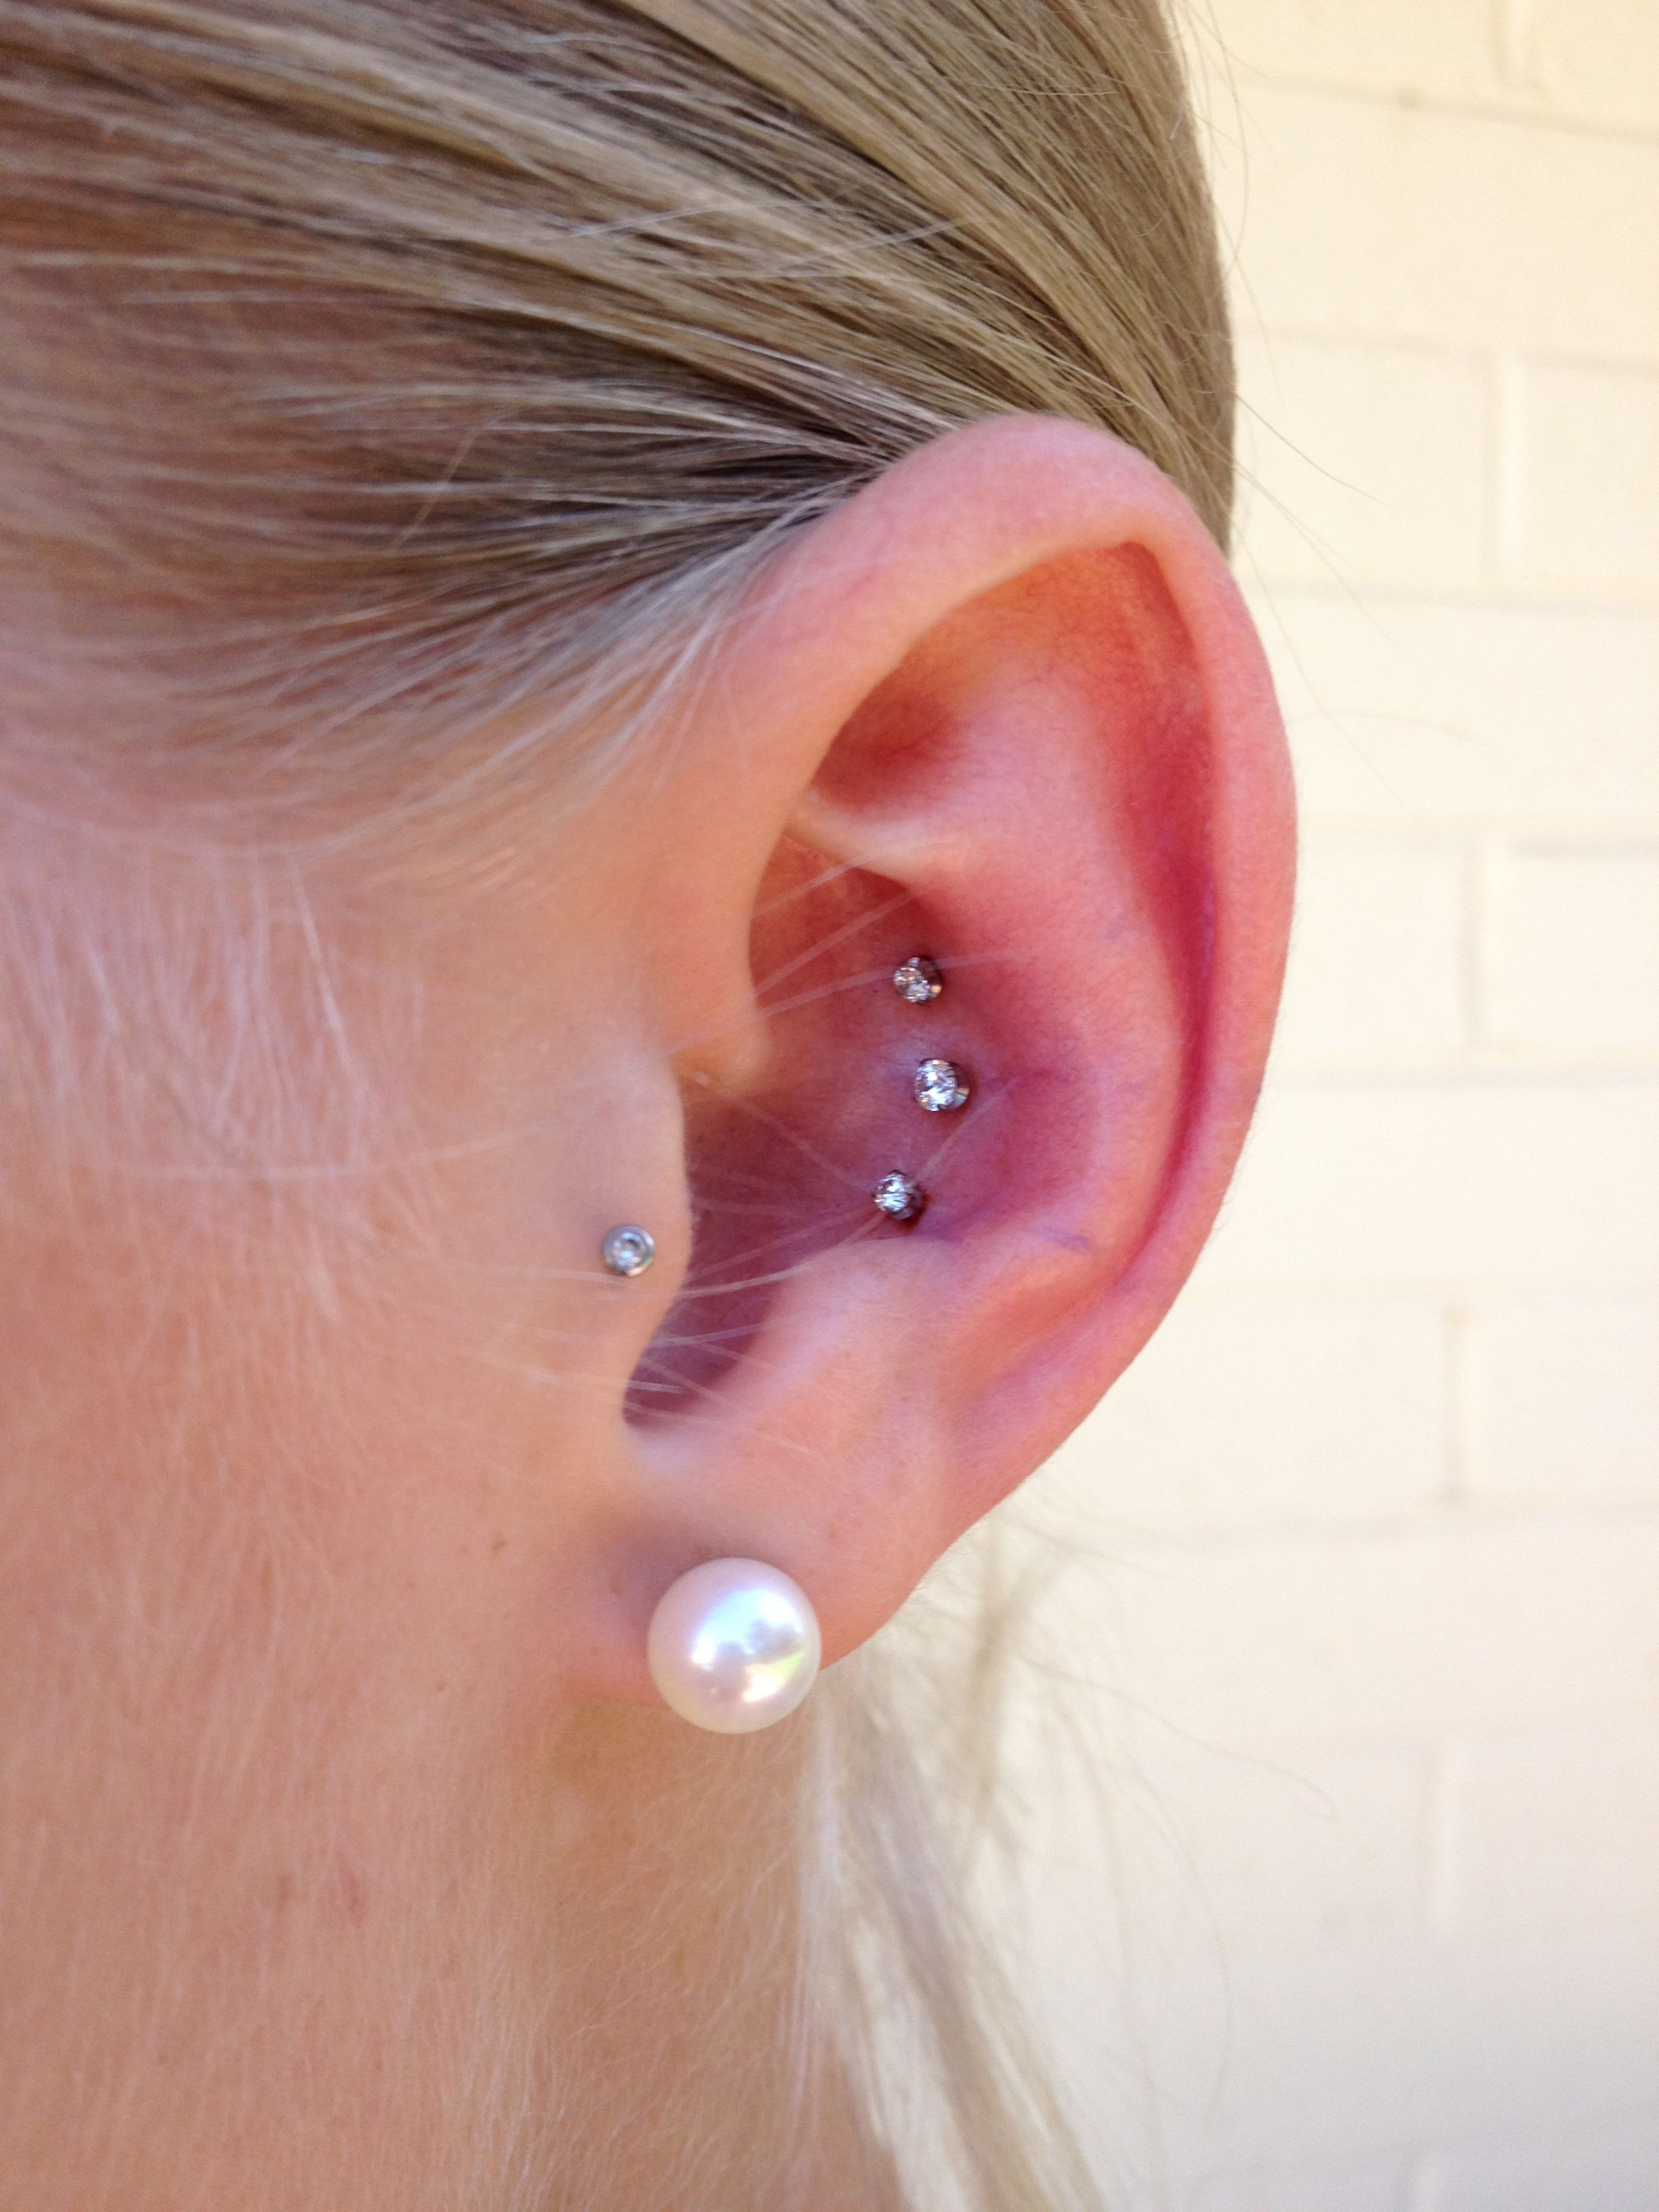 Triple conch piercing I donut know if I could sit through  more